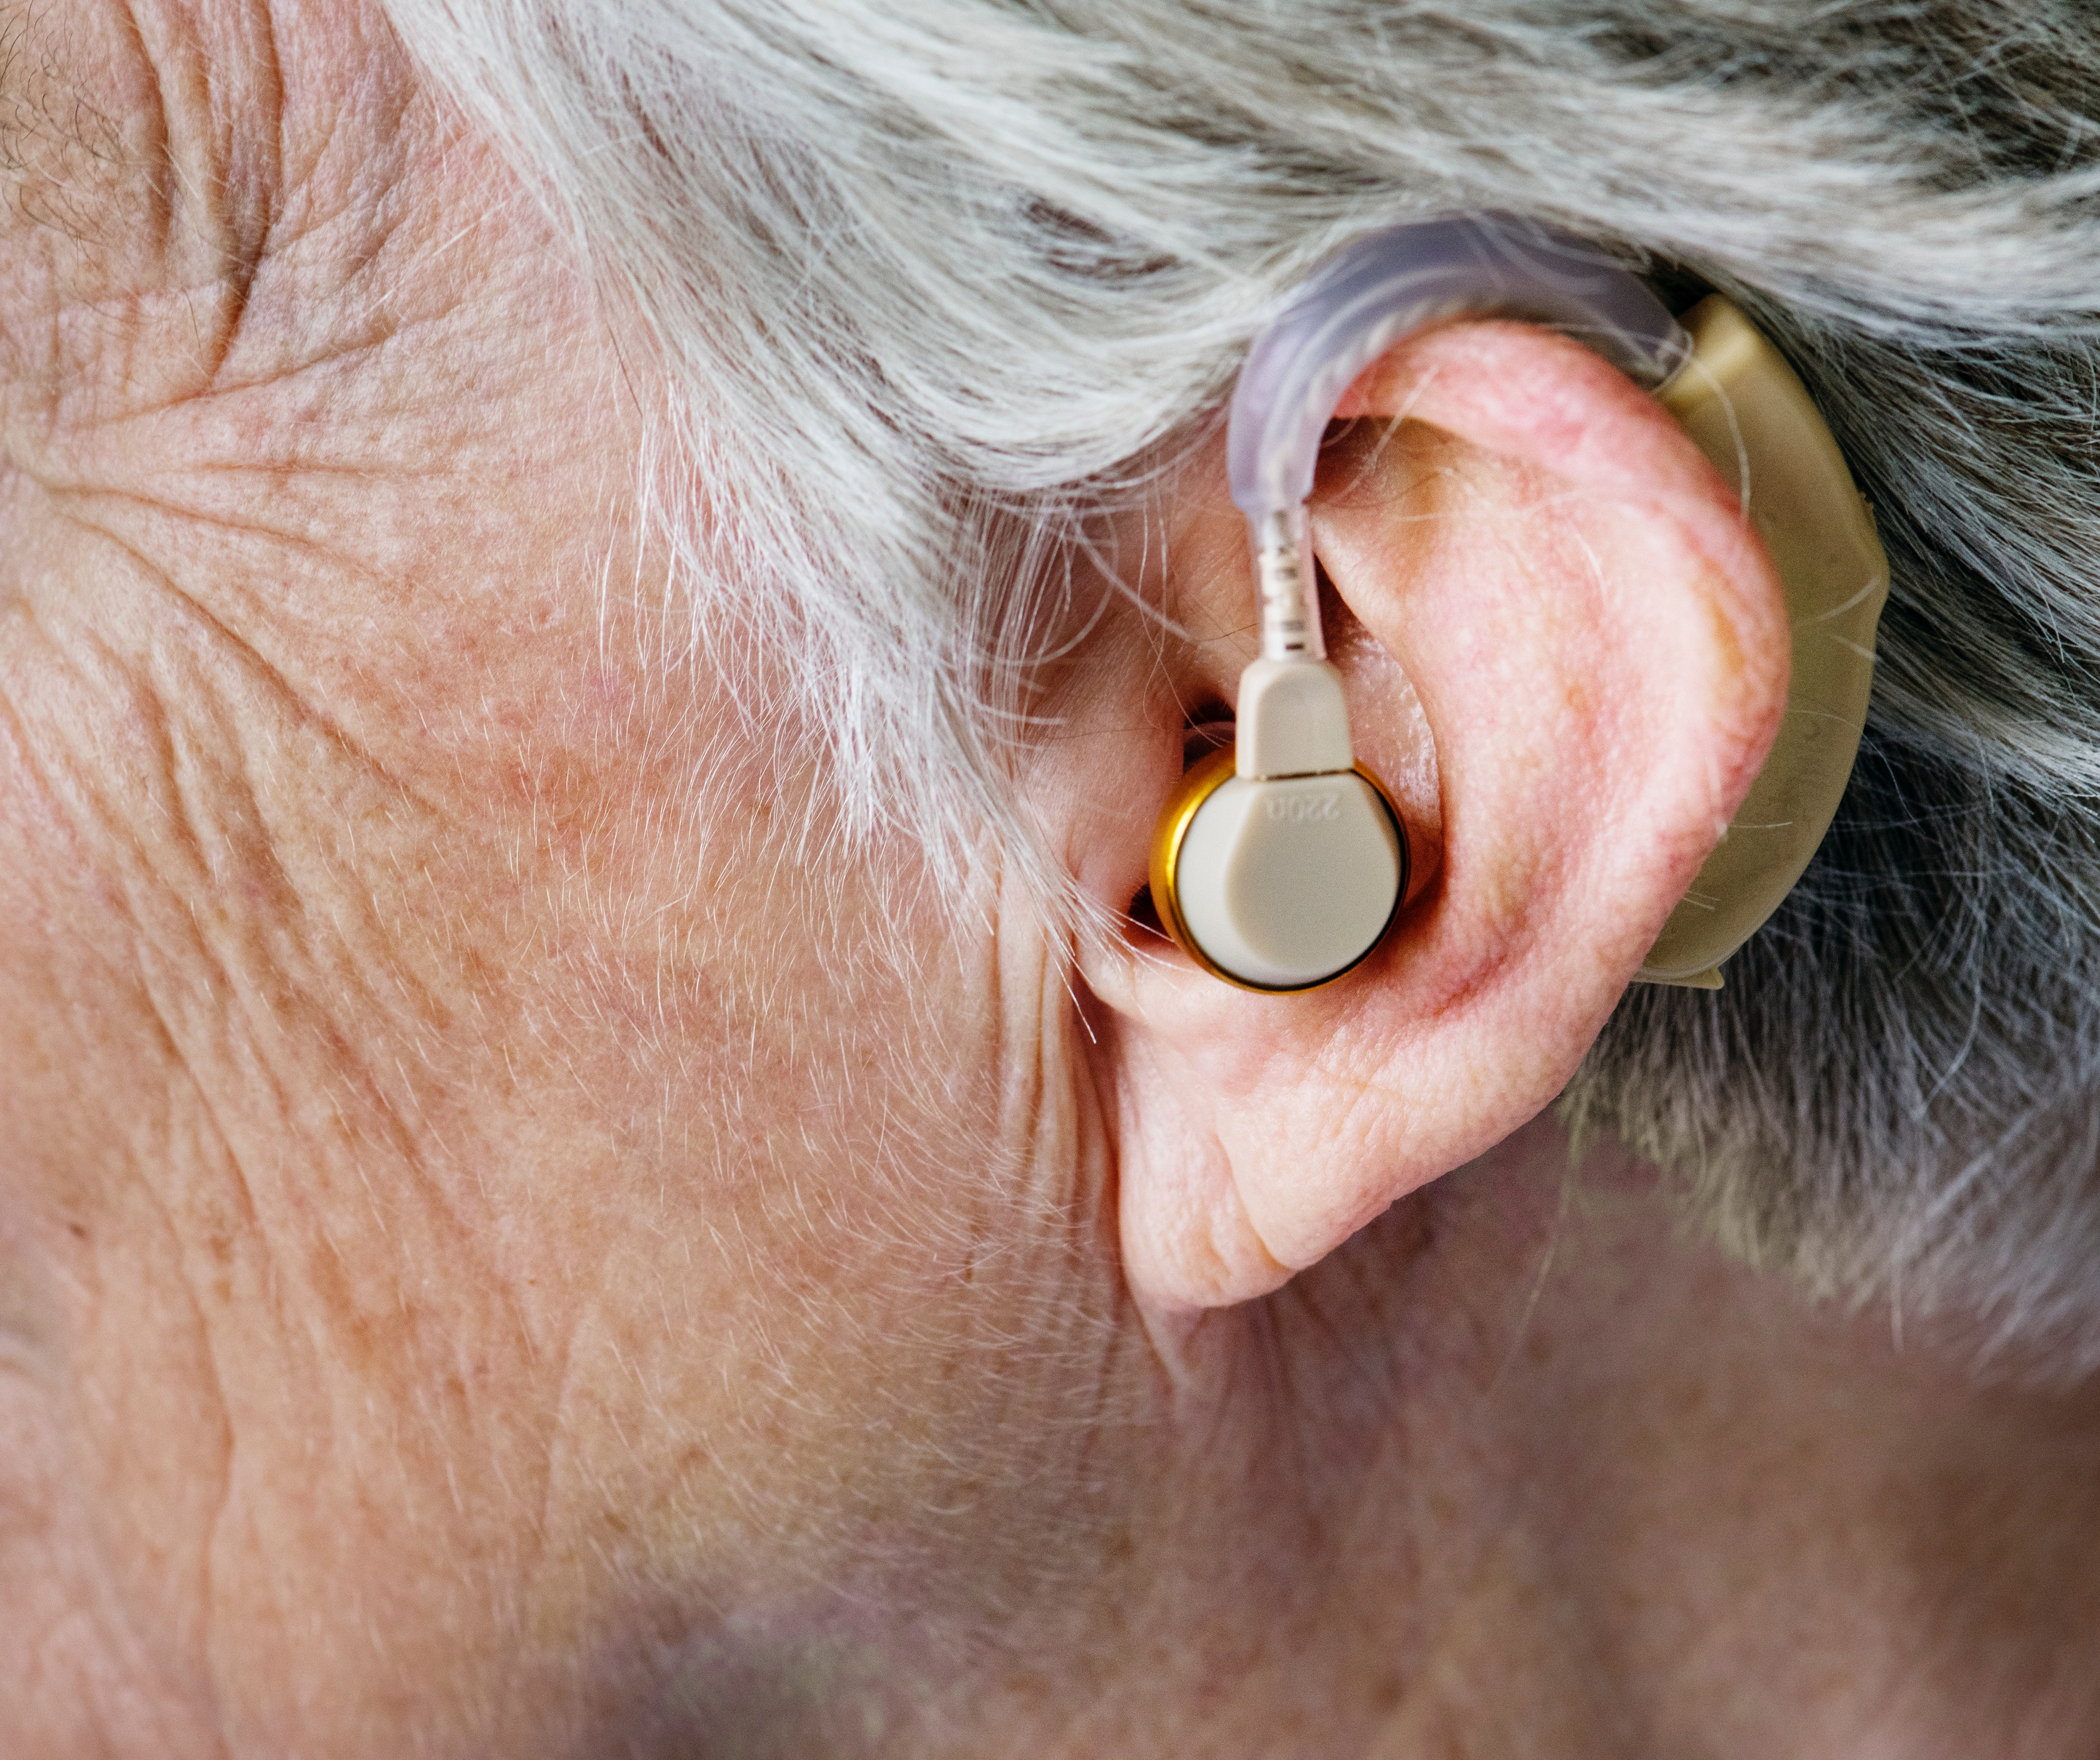 If Hearing Loss is Not Treated, Brain Can 'Forget' How to Hear and Understand Speech, Says Expert